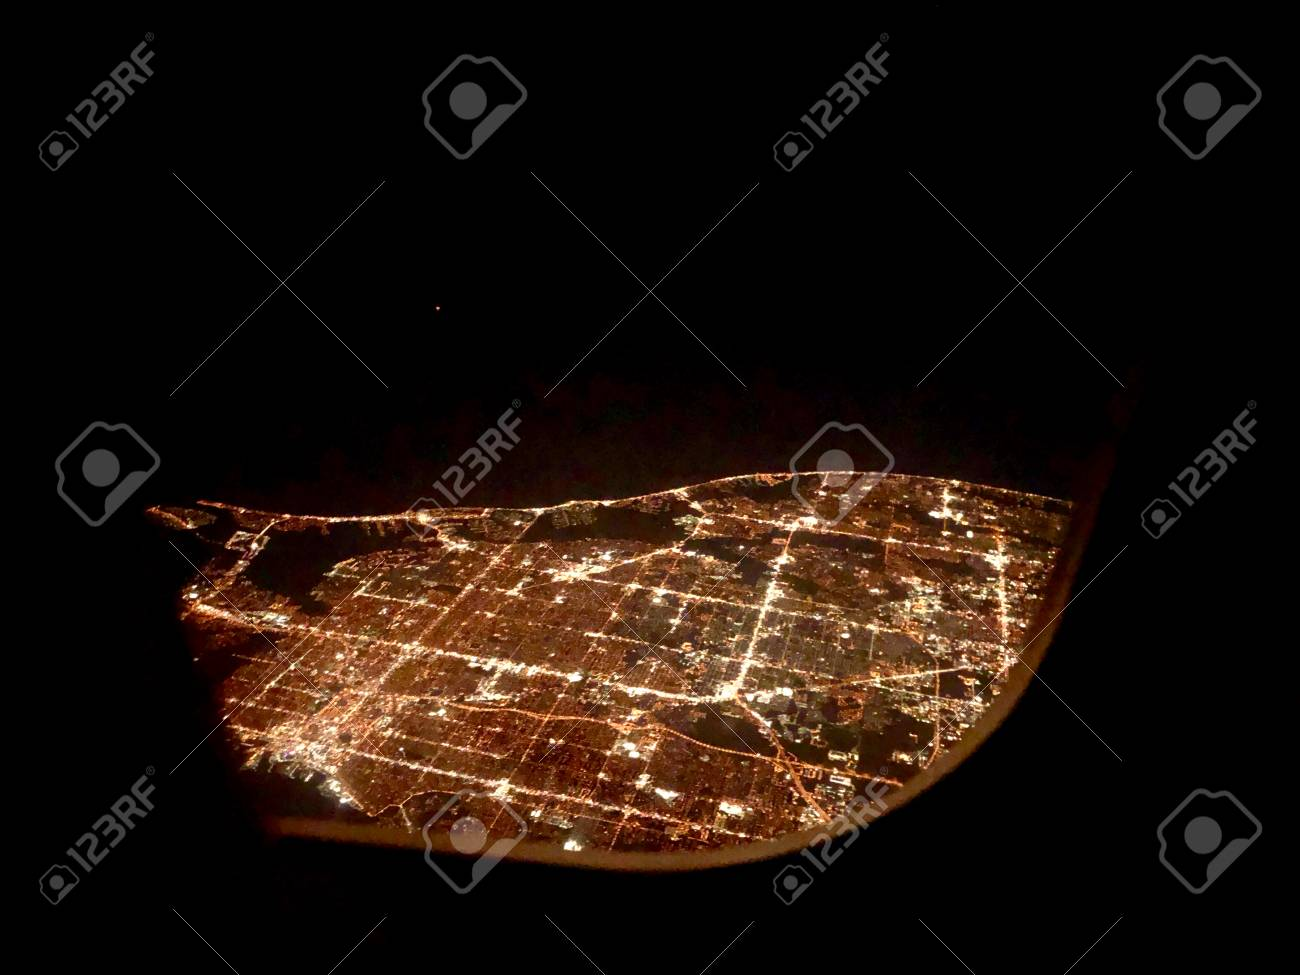 Flying Over A City At Night Looking Lights Through Airplane Window Stock Photo